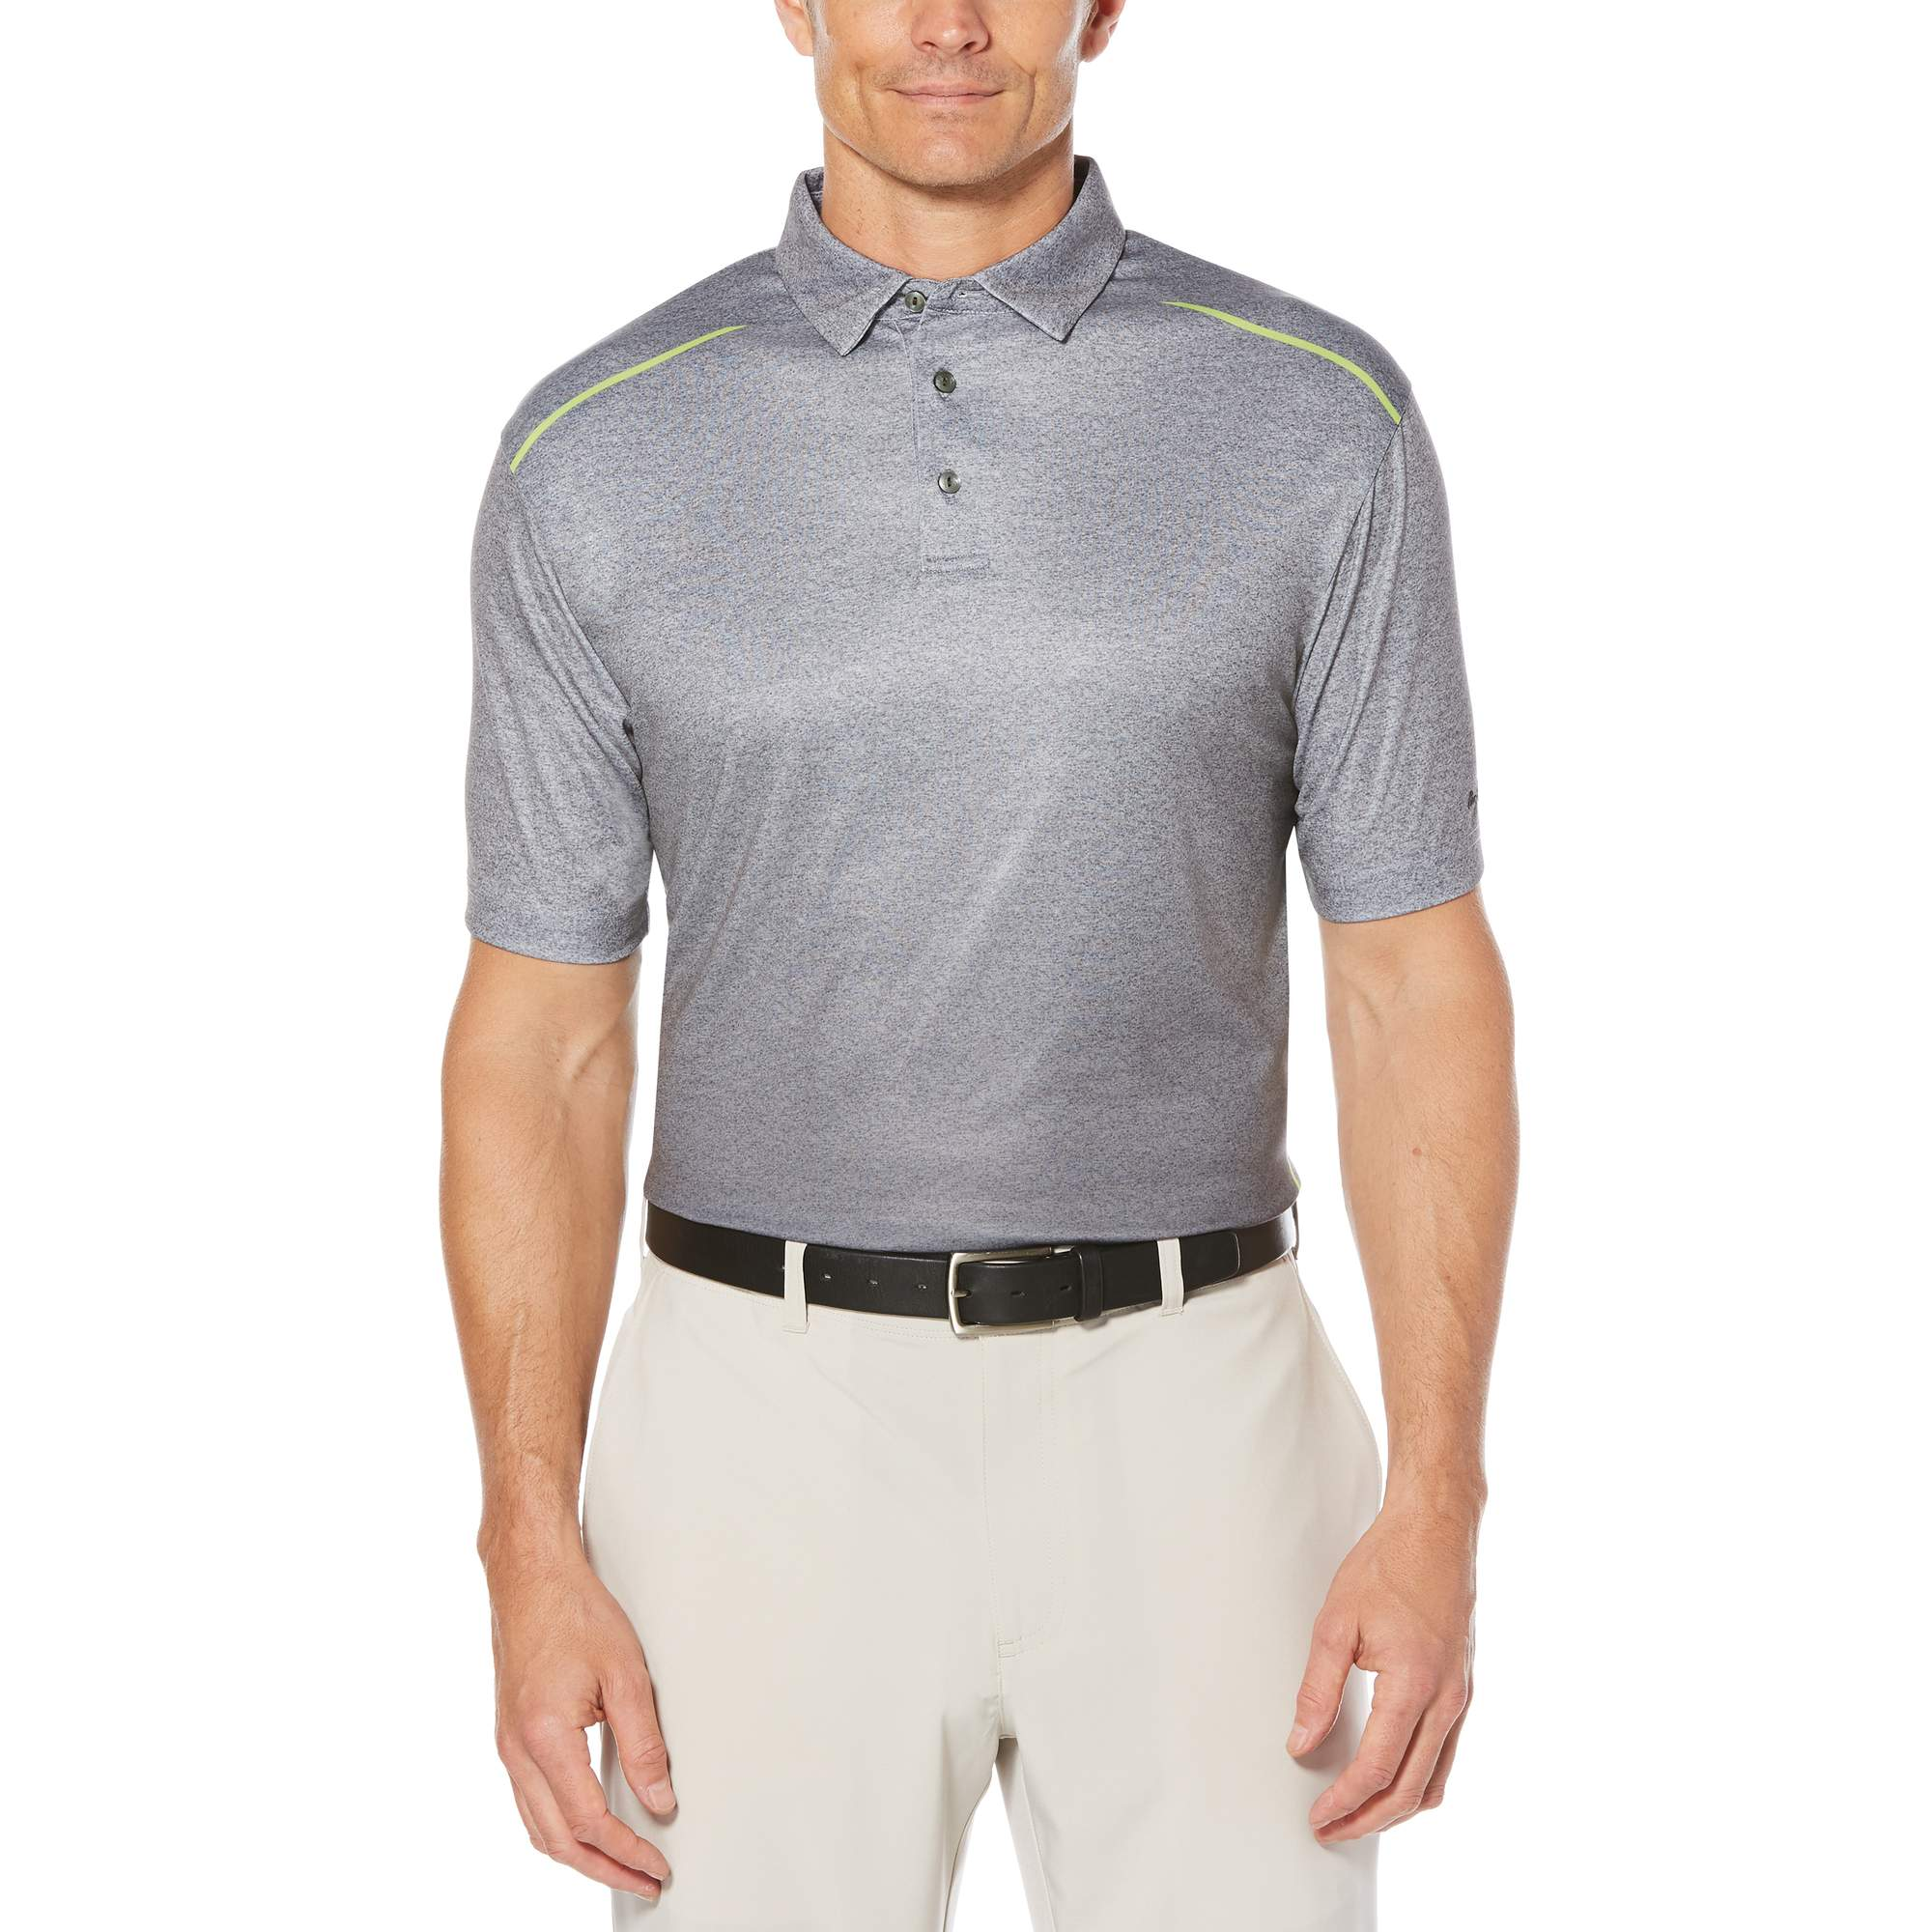 Men's Performance Short Sleeve Ombre Printed Golf Polo